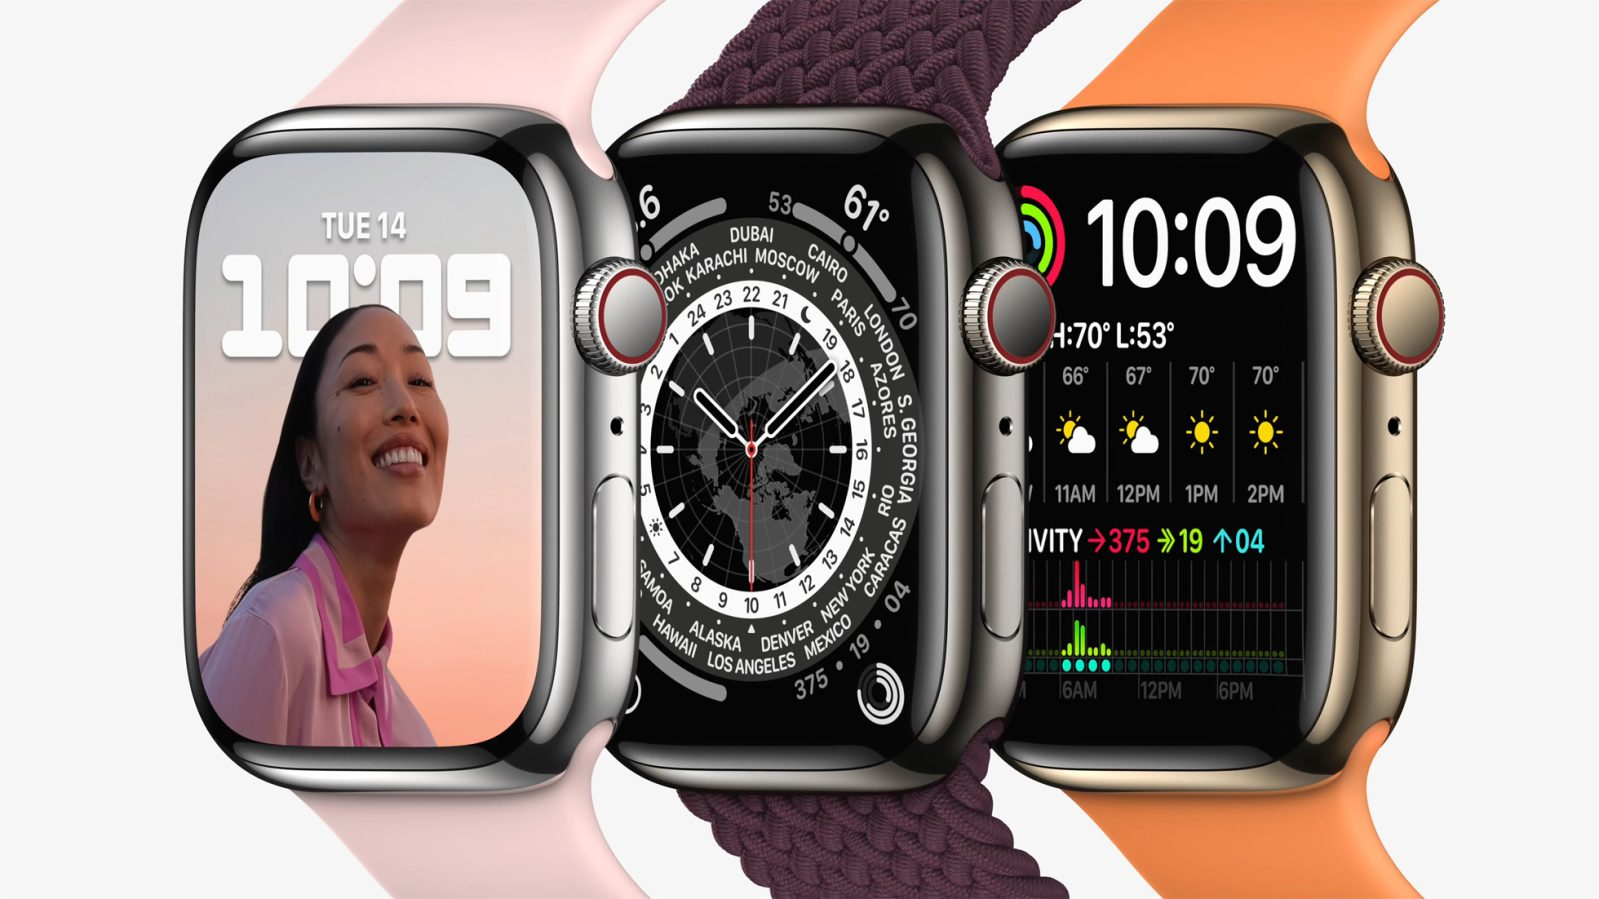 Apple Watch Series 7 rumored to hit stores in mid-October